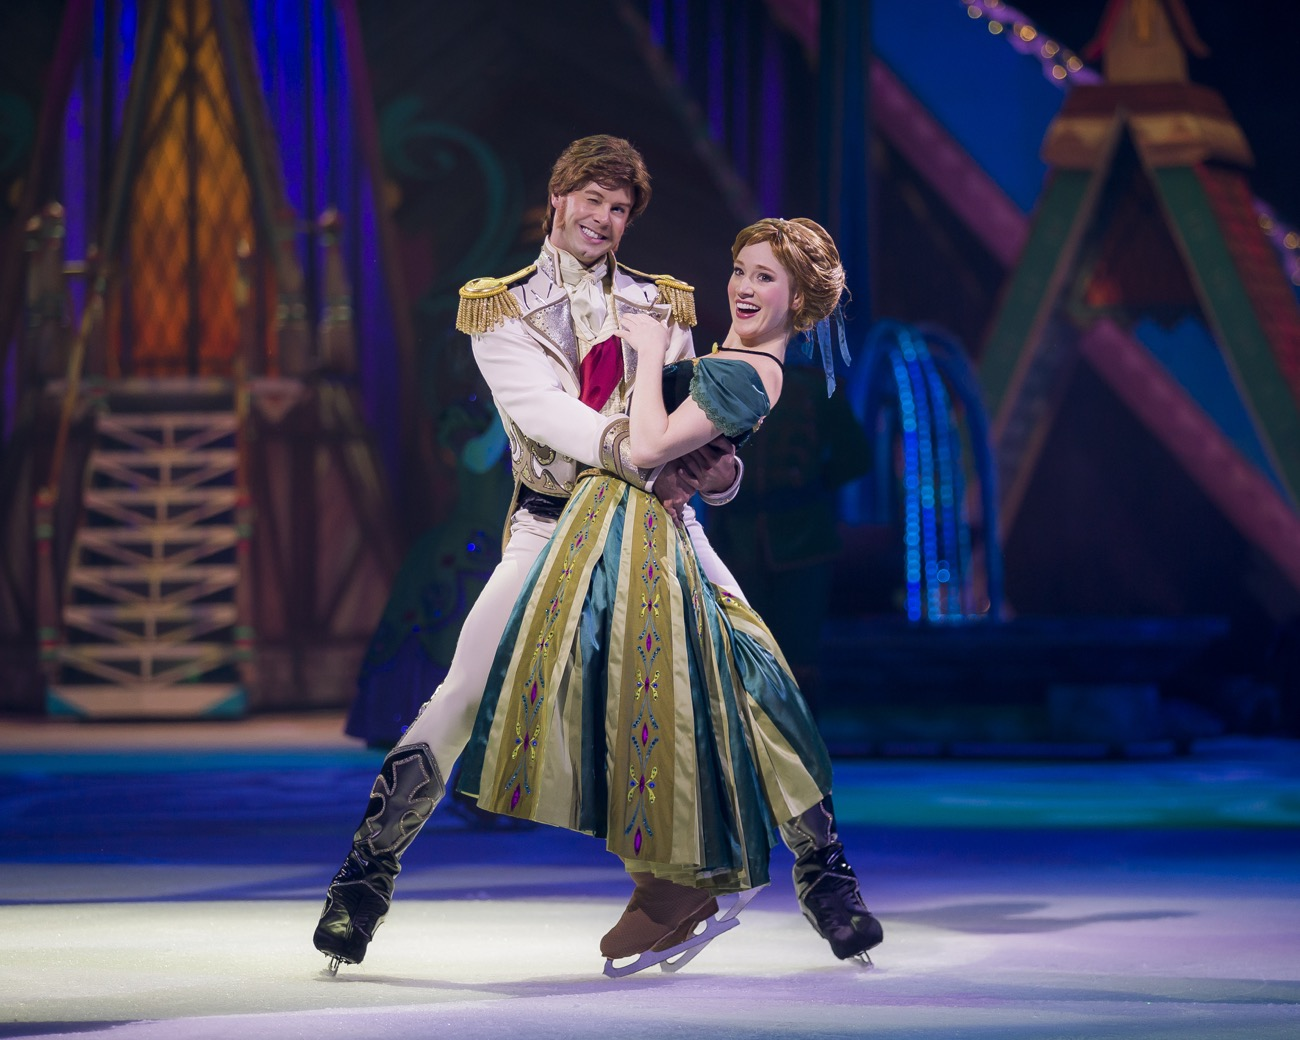 Disney On Ice presents Frozen is coming to U.S. Bank Arena with seven performances March 7-10. Explore themes of love, forgiveness, and the power of friendship with your family and friends as you follow royal sisters Anna and Elsa on a magical journey through the spellbinding world of Arandelle. ADDRESS: 100 Broadway Street (45202) / Image courtesy of U.S. Bank Arena // Published: 3.3.19